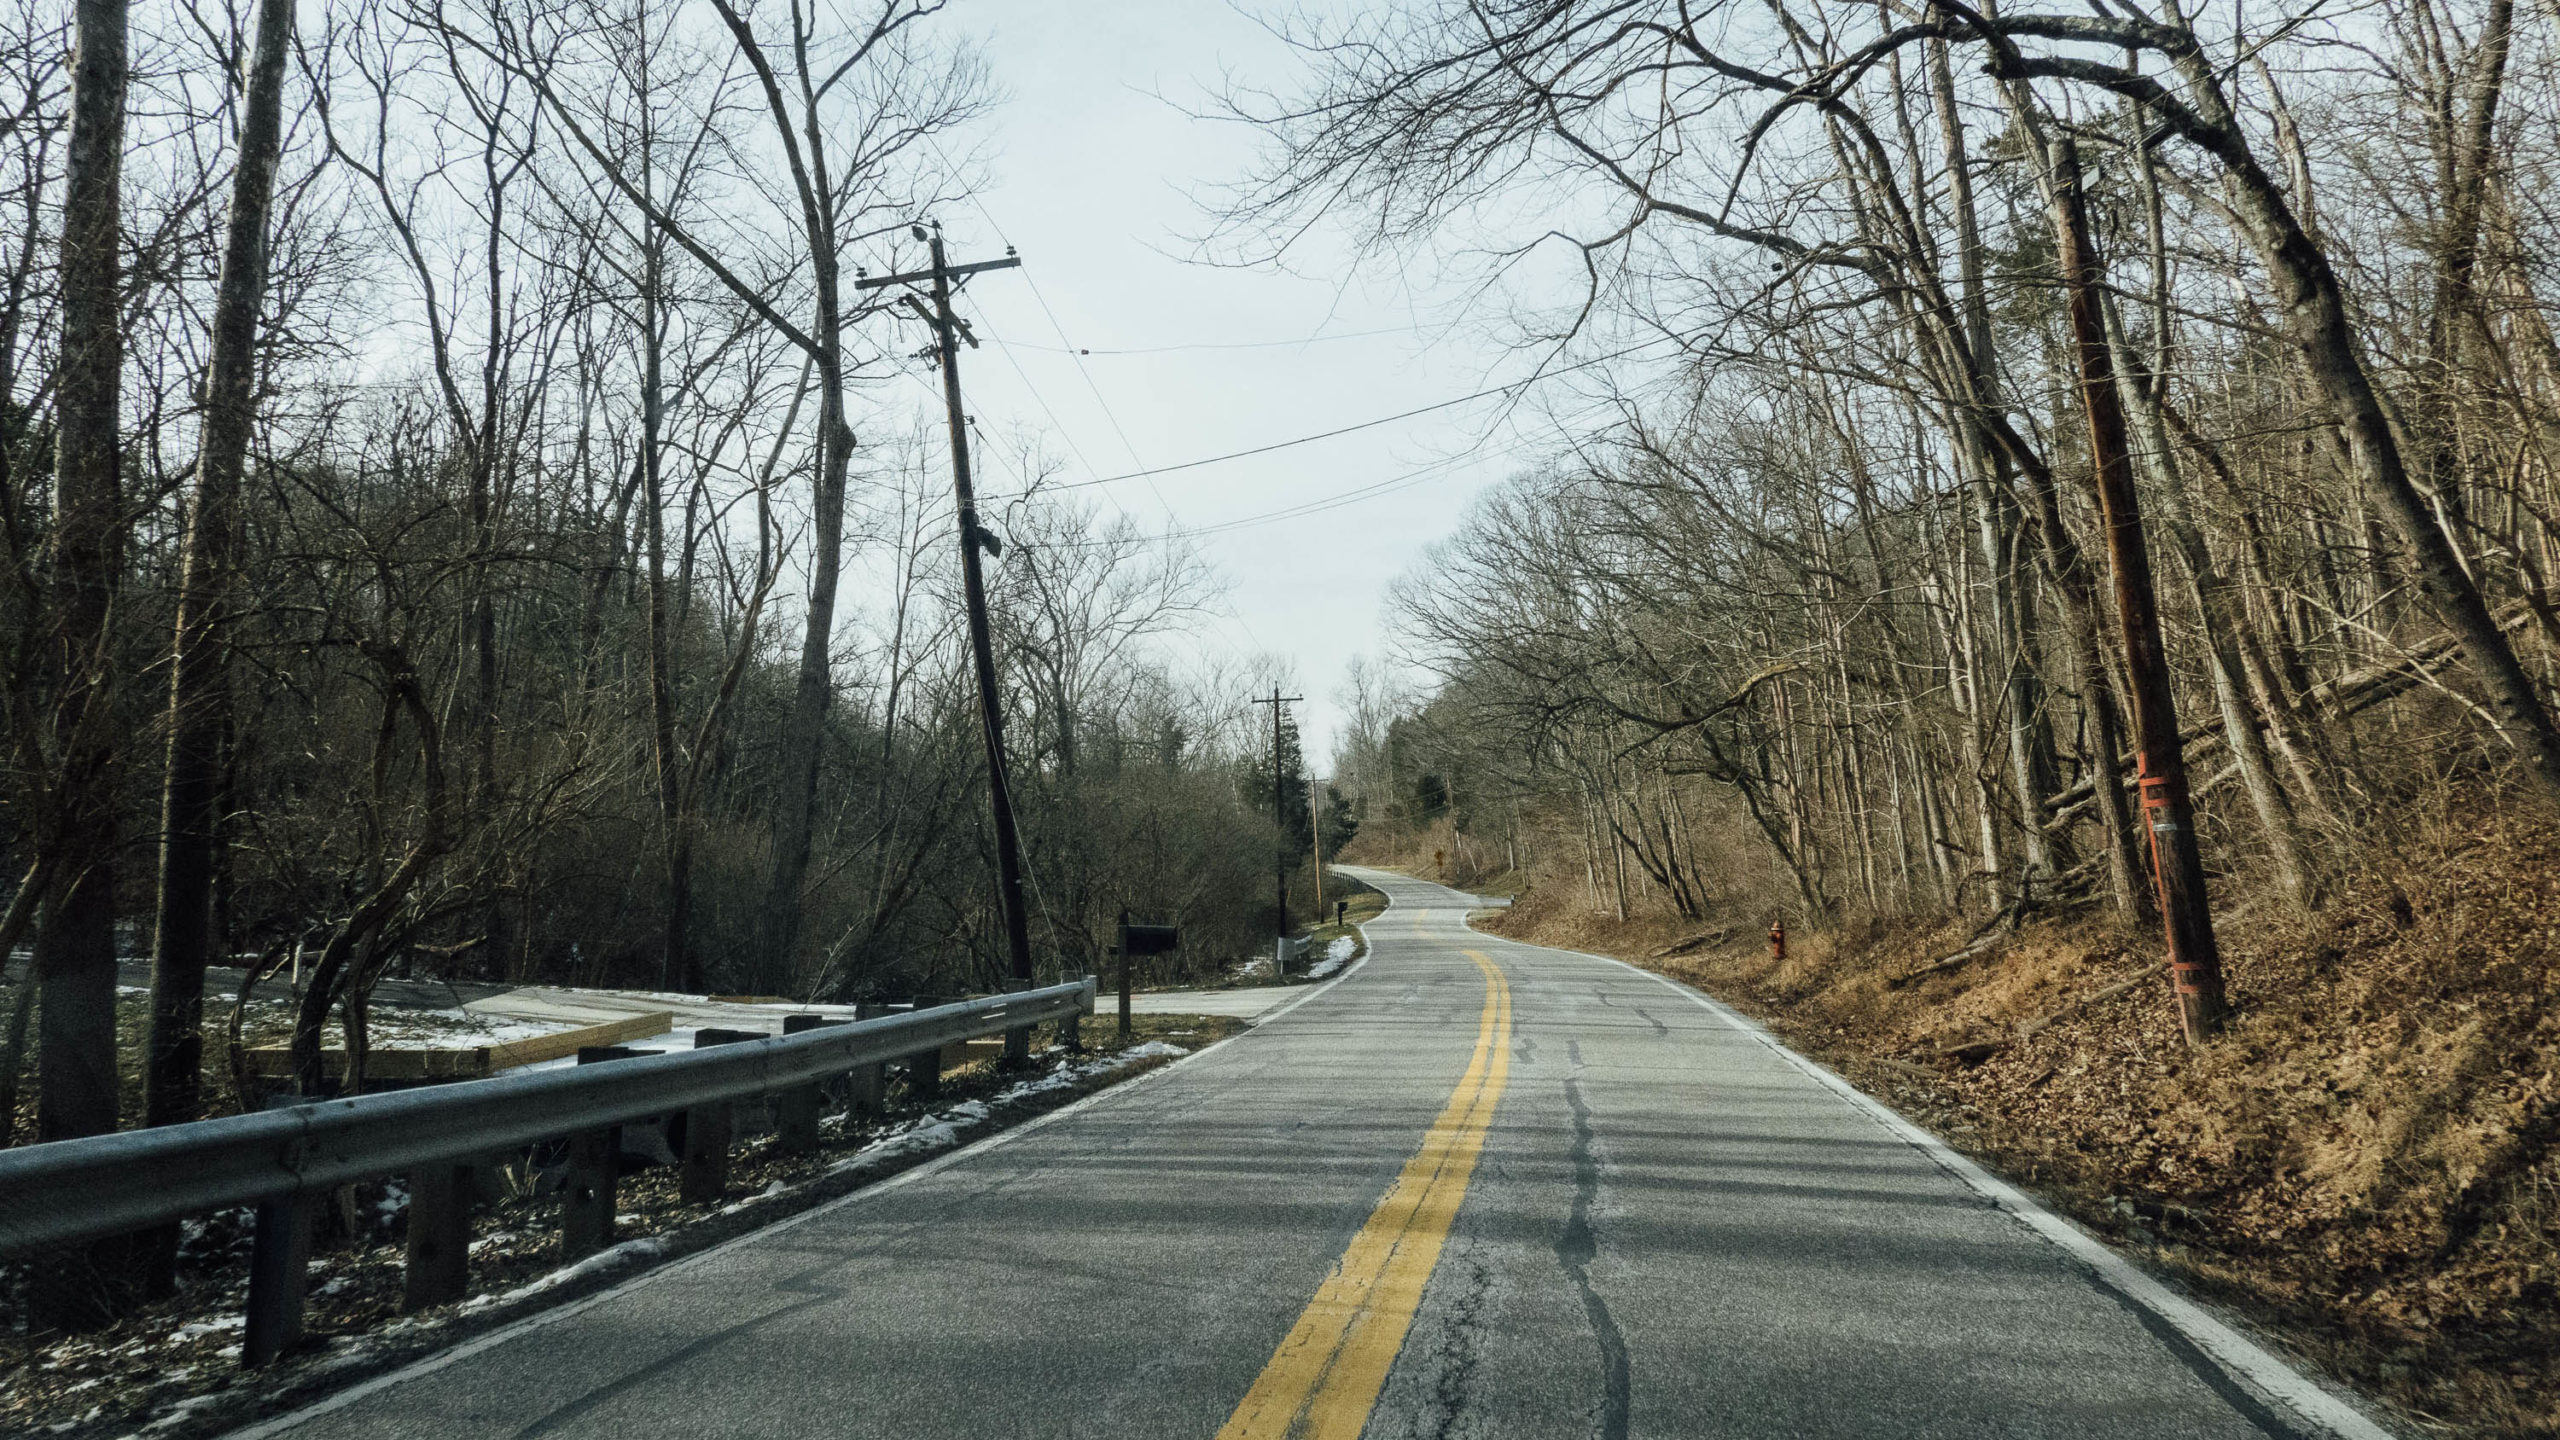 Winding country road in winter